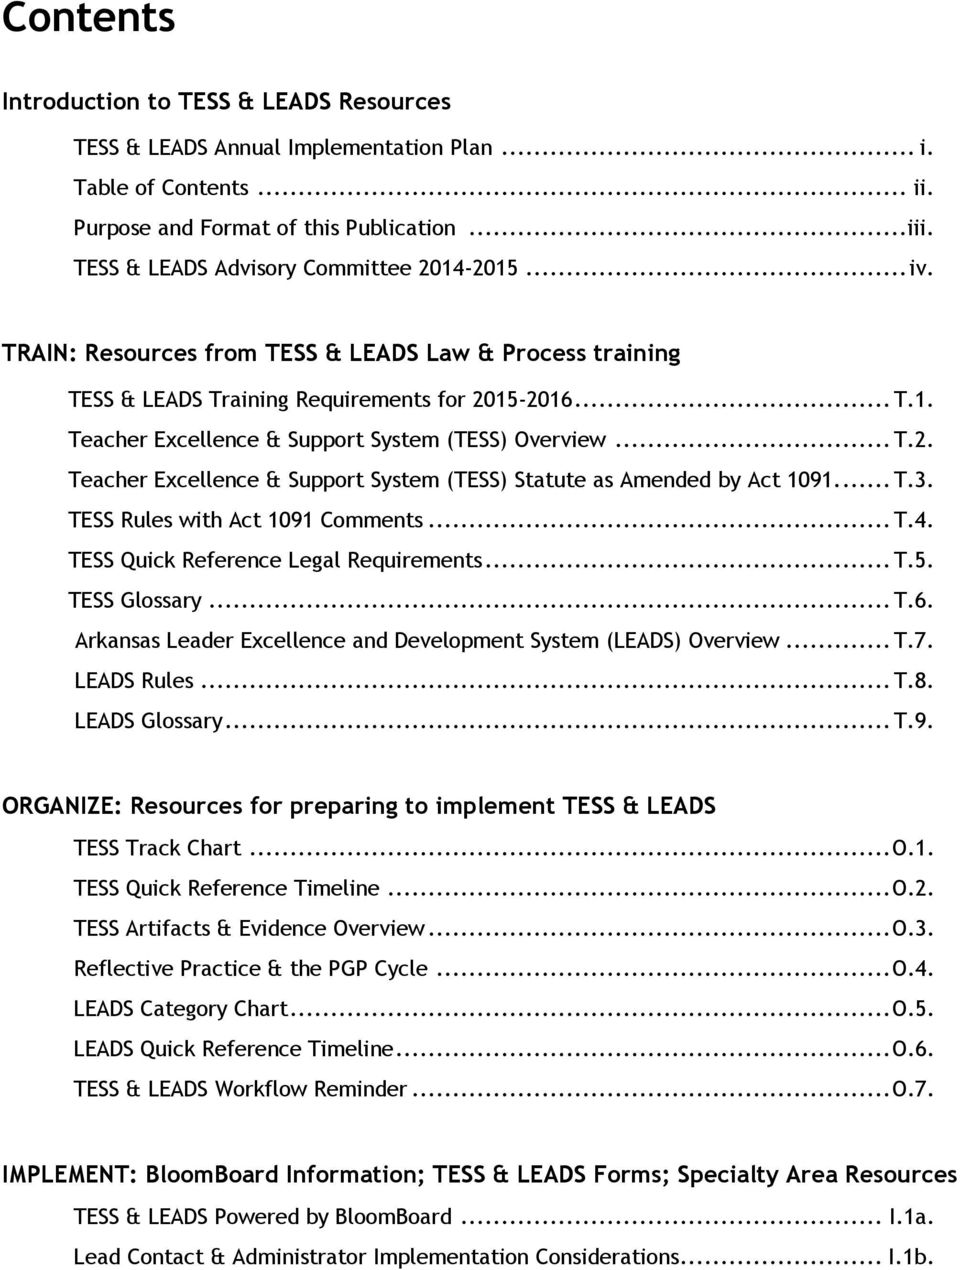 .. T.2. Teacher Excellence & Support System (TESS) Statute as Amended by Act 1091.... T.3. TESS Rules with Act 1091 Comments... T.4. TESS Quick Reference Legal Requirements... T.5. TESS Glossary... T.6.